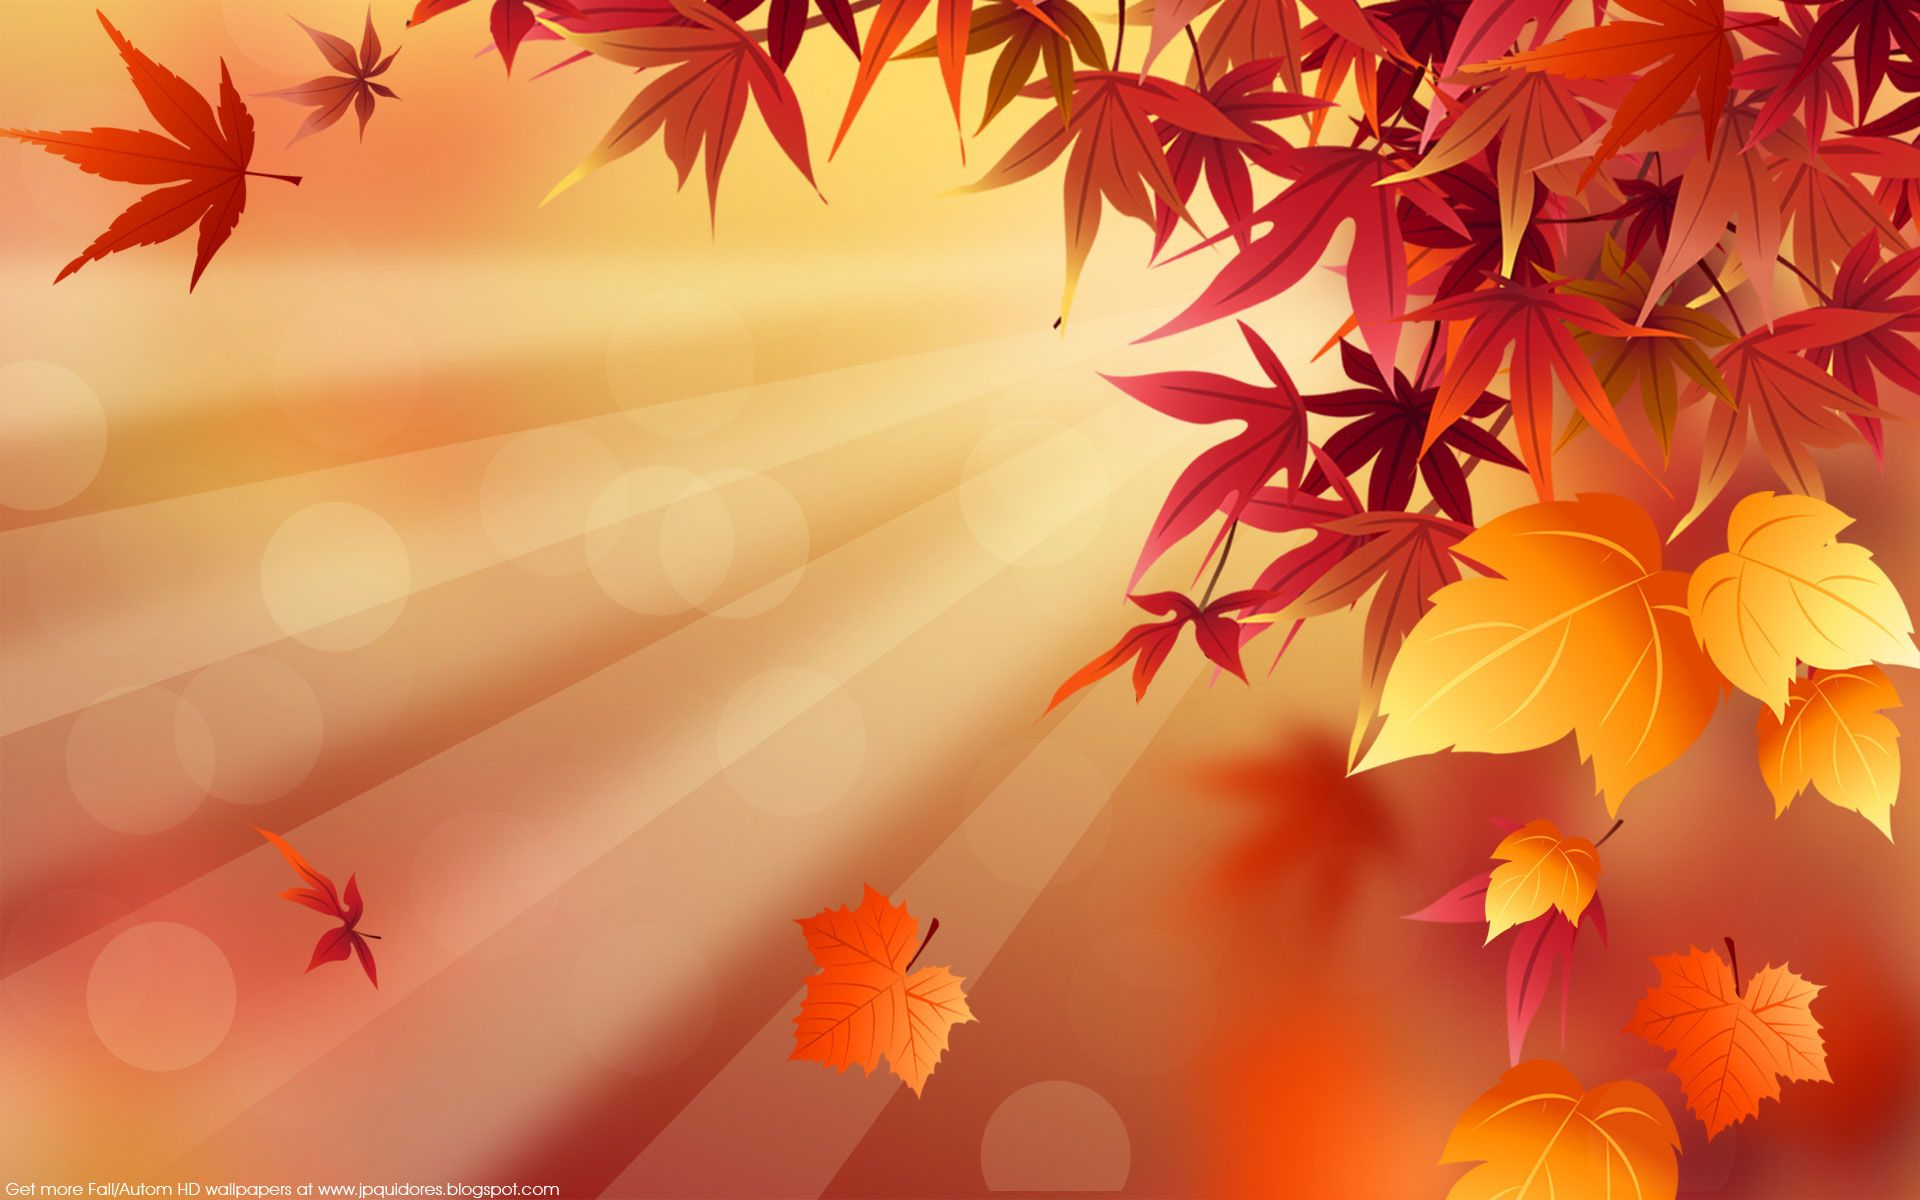 Autumn Fall Leaves Hd Wallpapers Download Free Fall Leaves Hd Nature Landscape Picture Autumn Wallp Fall Wallpaper Free Fall Wallpaper Fall Desktop Backgrounds